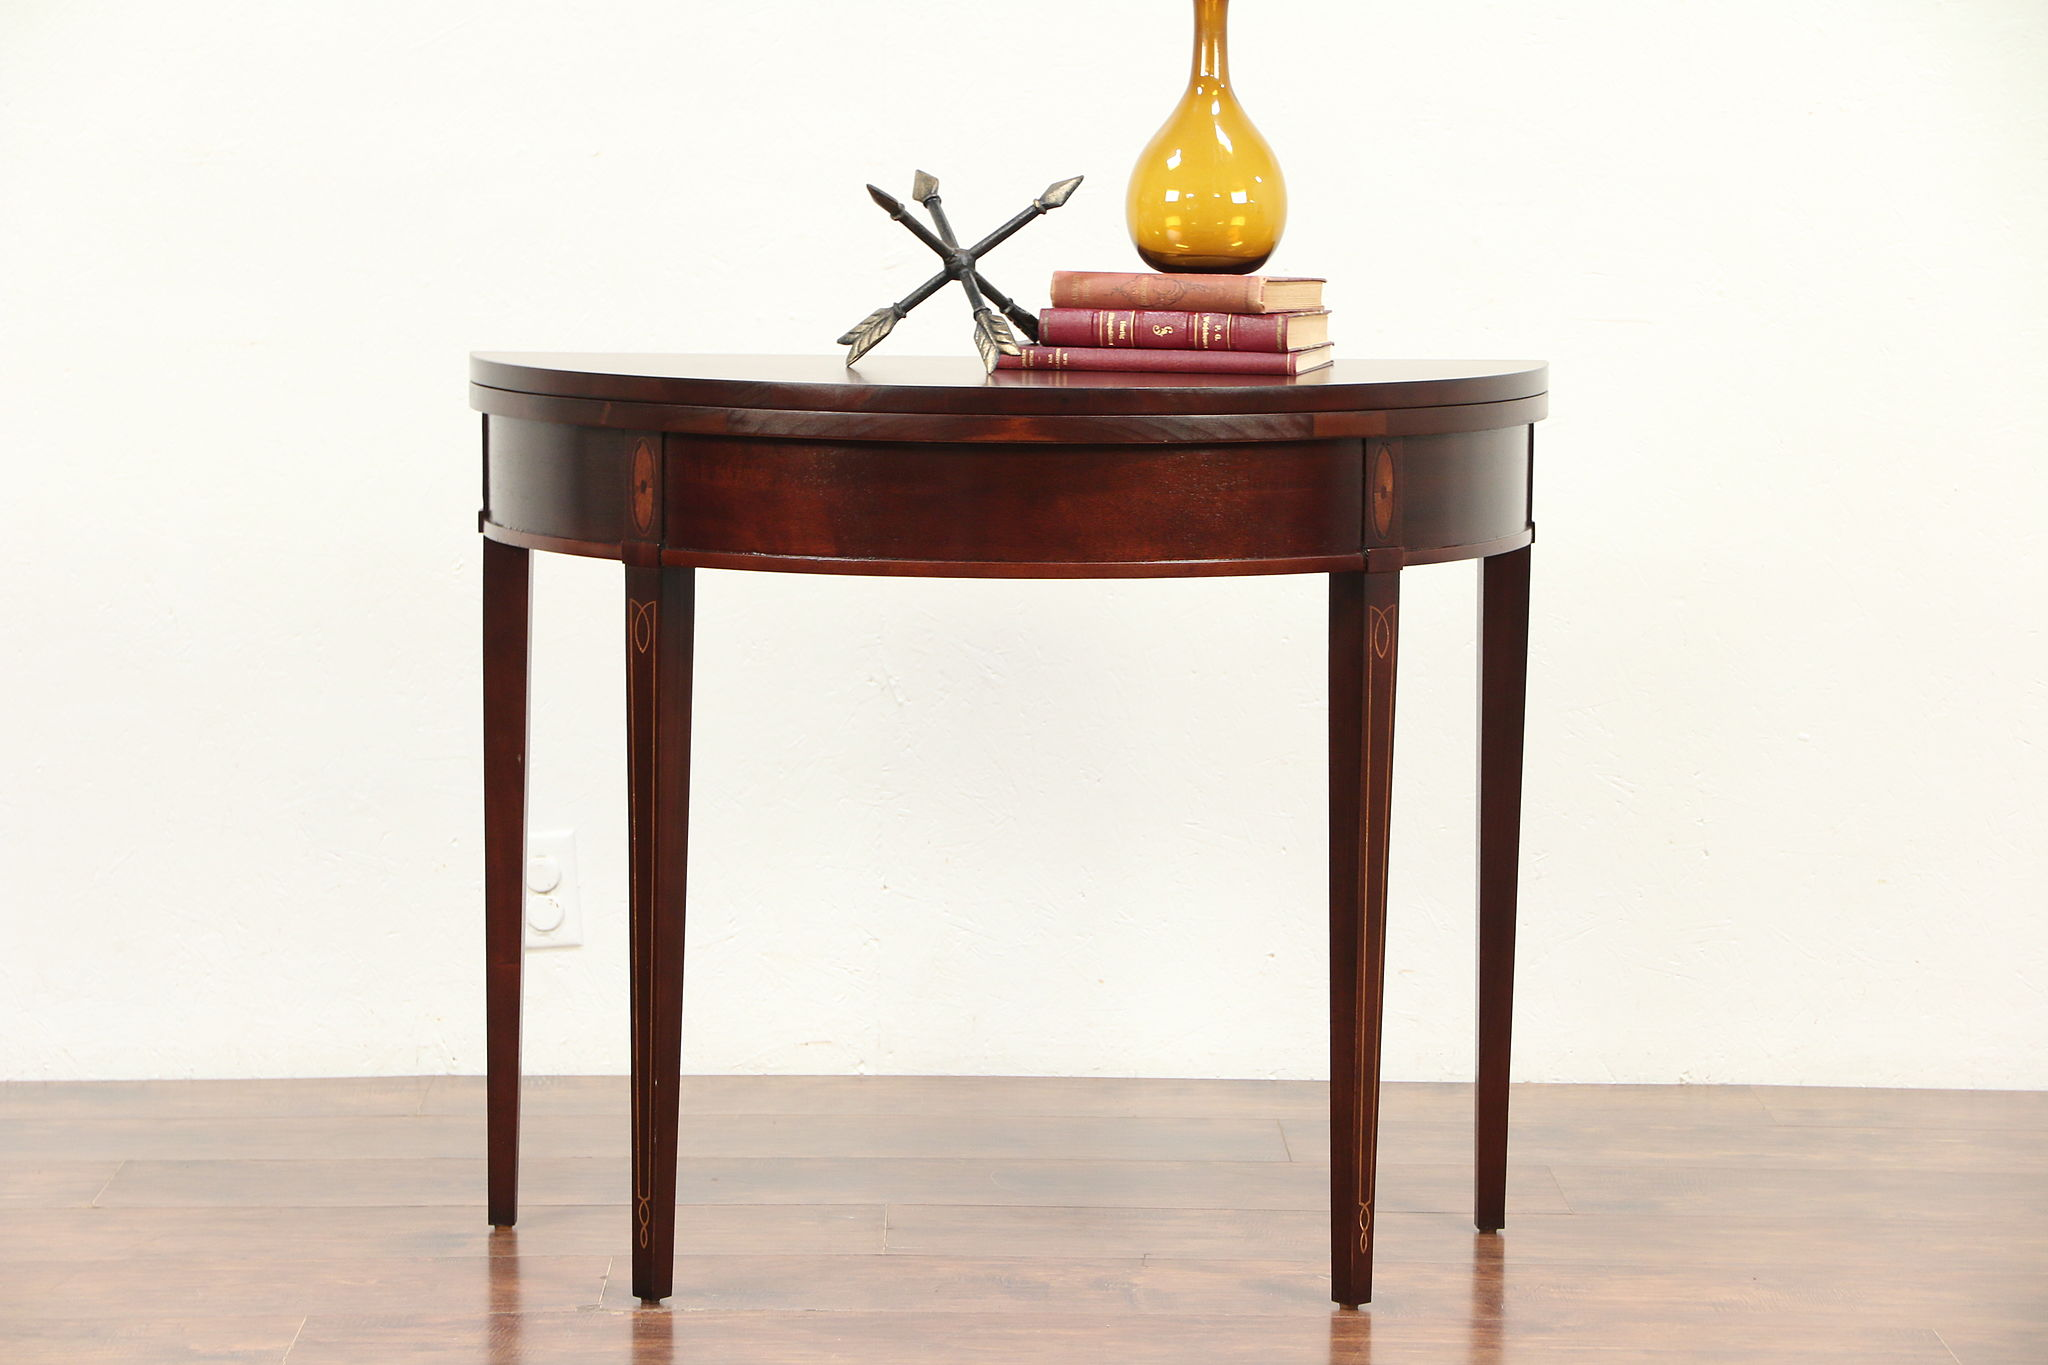 Foyer Console Game : Demilune half round vintage hall console game table